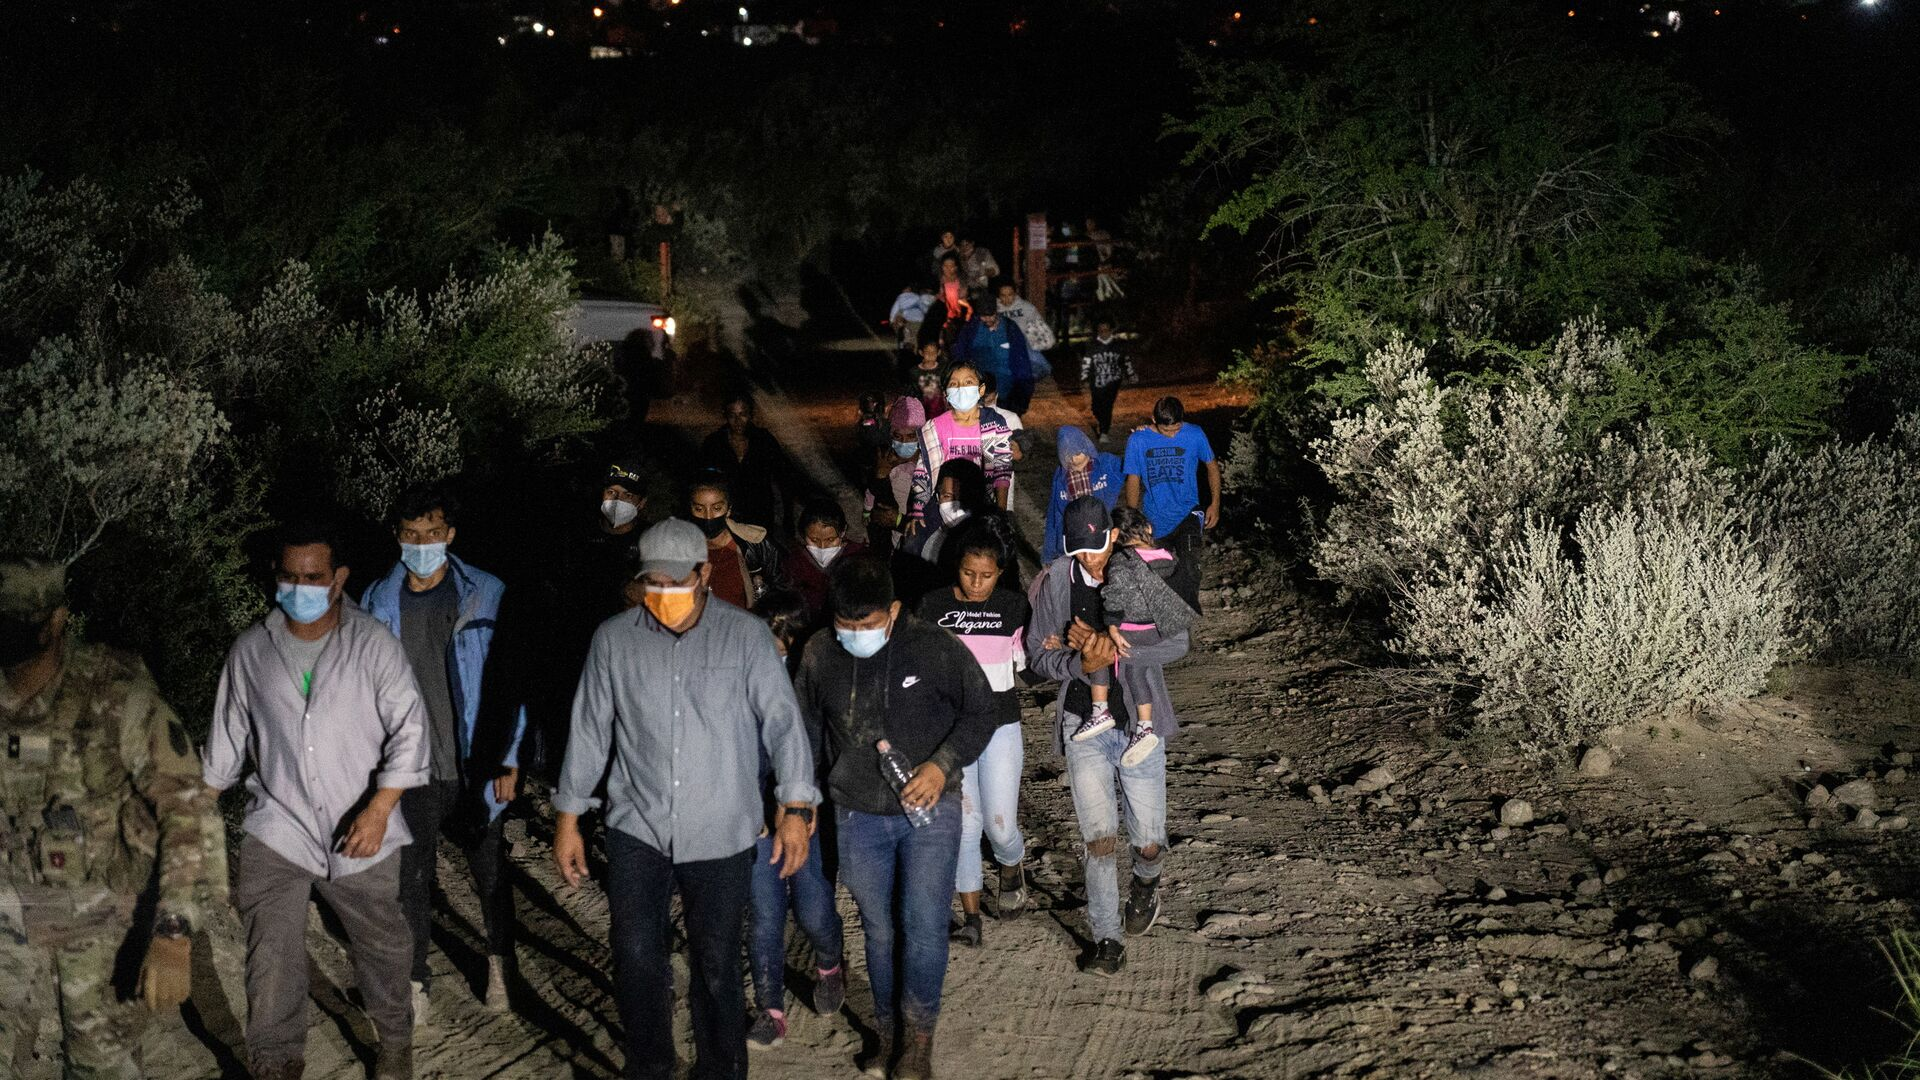 Asylum-seeking migrant families are escorted out of a private property by the U.S. National Guard after crossing the Rio Grande river into the United States from Mexico in Roma, Texas, U.S., August 14, 2021 - Sputnik International, 1920, 07.09.2021